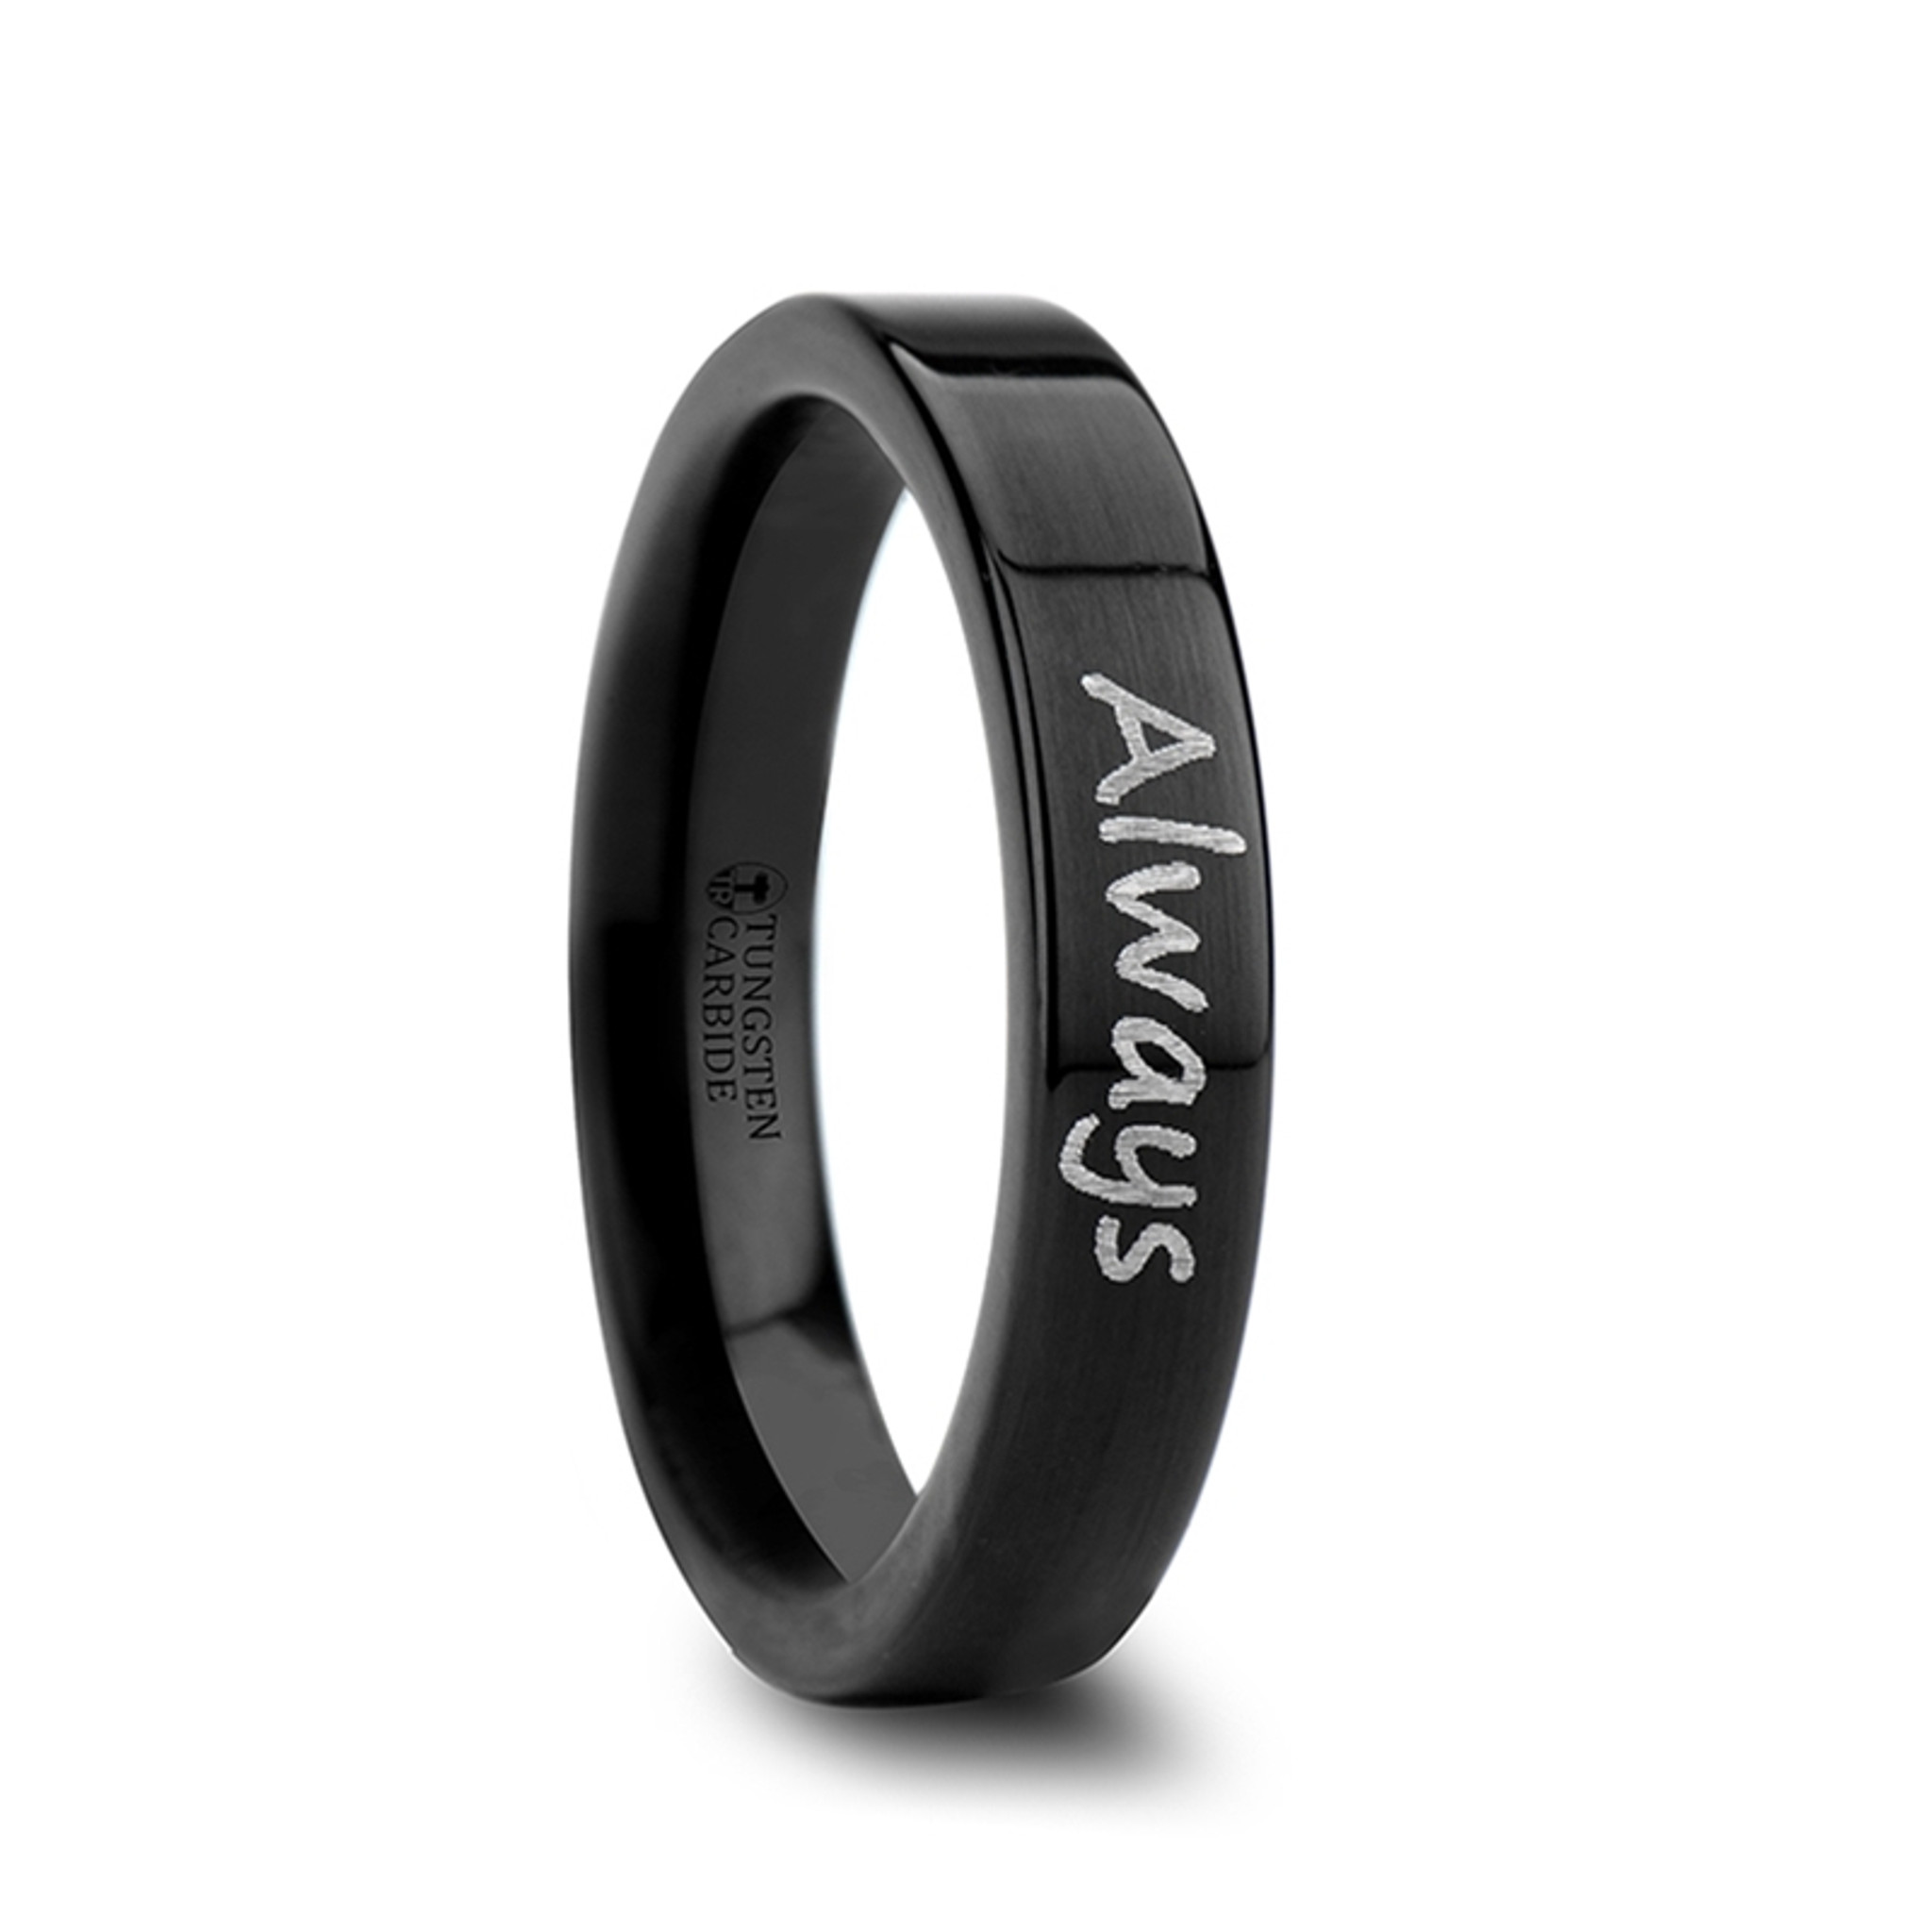 Briseis Handwritten Engraved Flat Pipe Cut Black Polished Tungsten Ring from Vansweden Jewelers